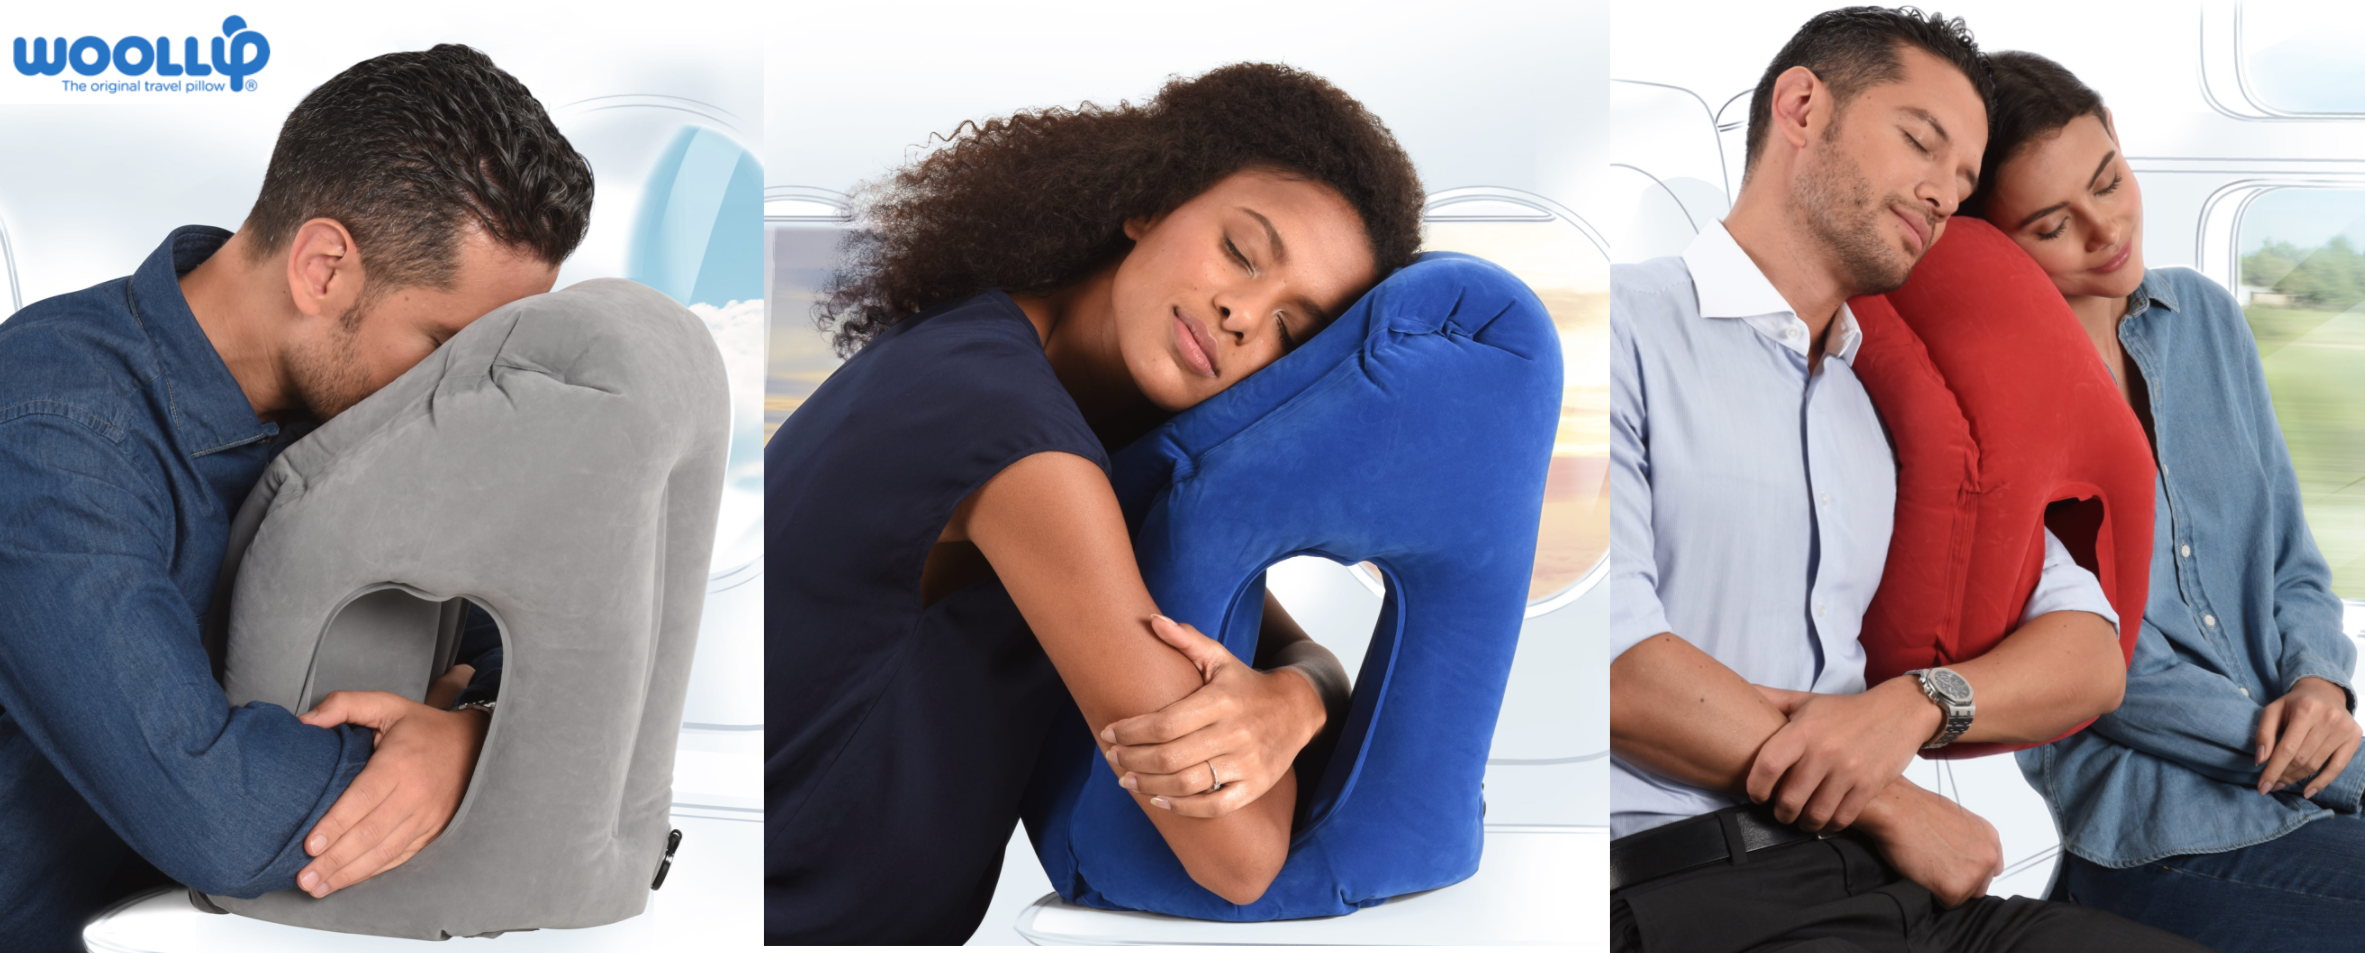 skysiesta t don of the neck airplane or a do travel best pillow cup jo pillows for airplanes